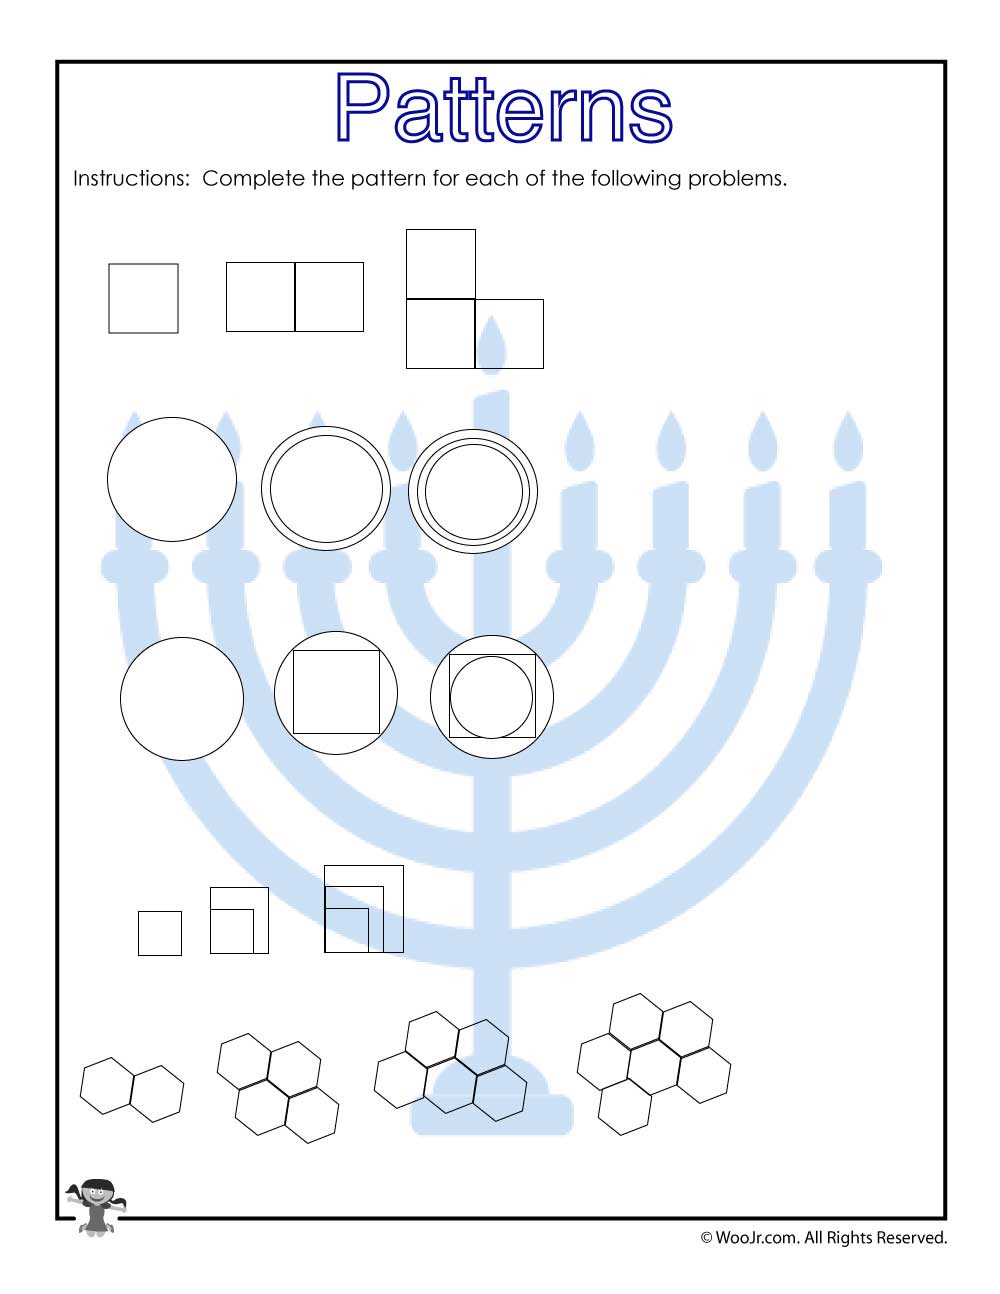 Prediction Worksheets for 3rd Grade Visual Pattern Prediction Worksheet for 3rd Grade